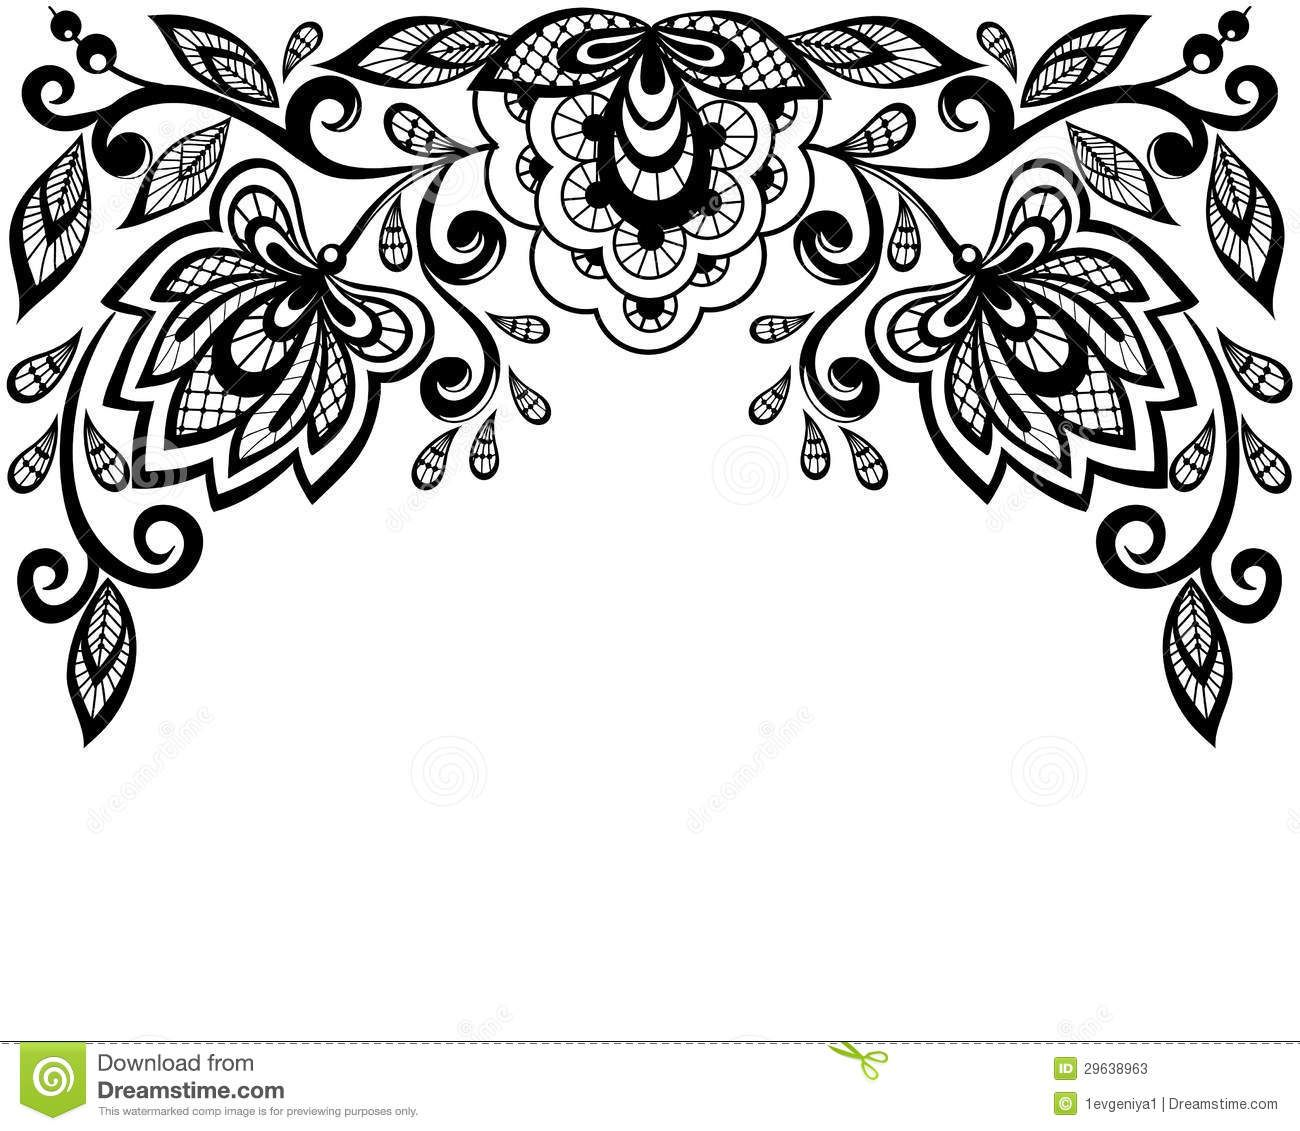 Leaves Clip Art Black And White Border Clipart Panda